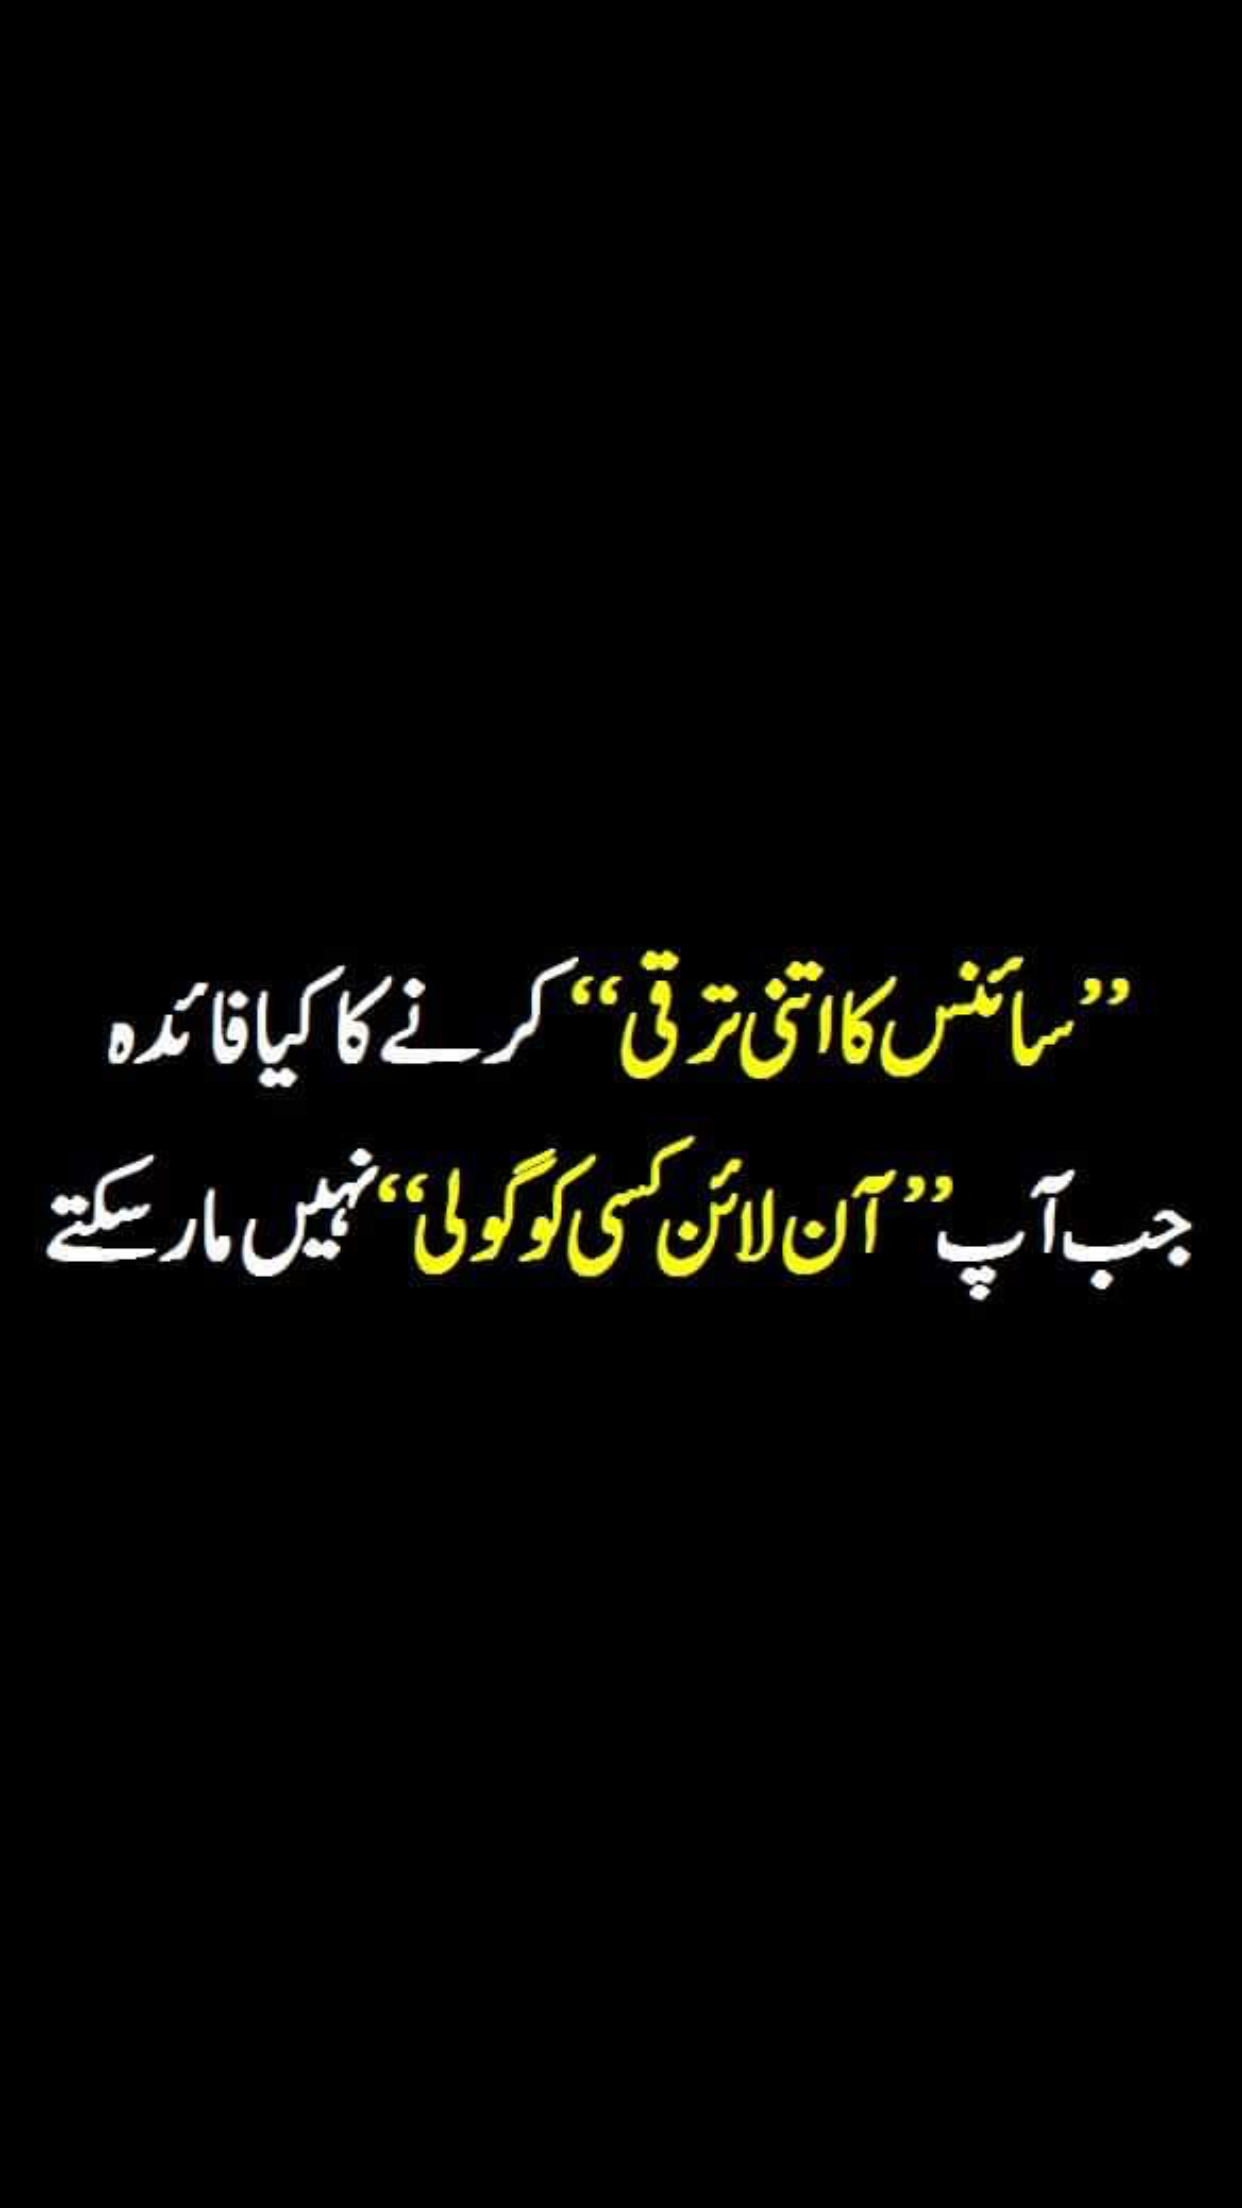 Pin by Sana Seher on Funny jokes Funny words, Funny